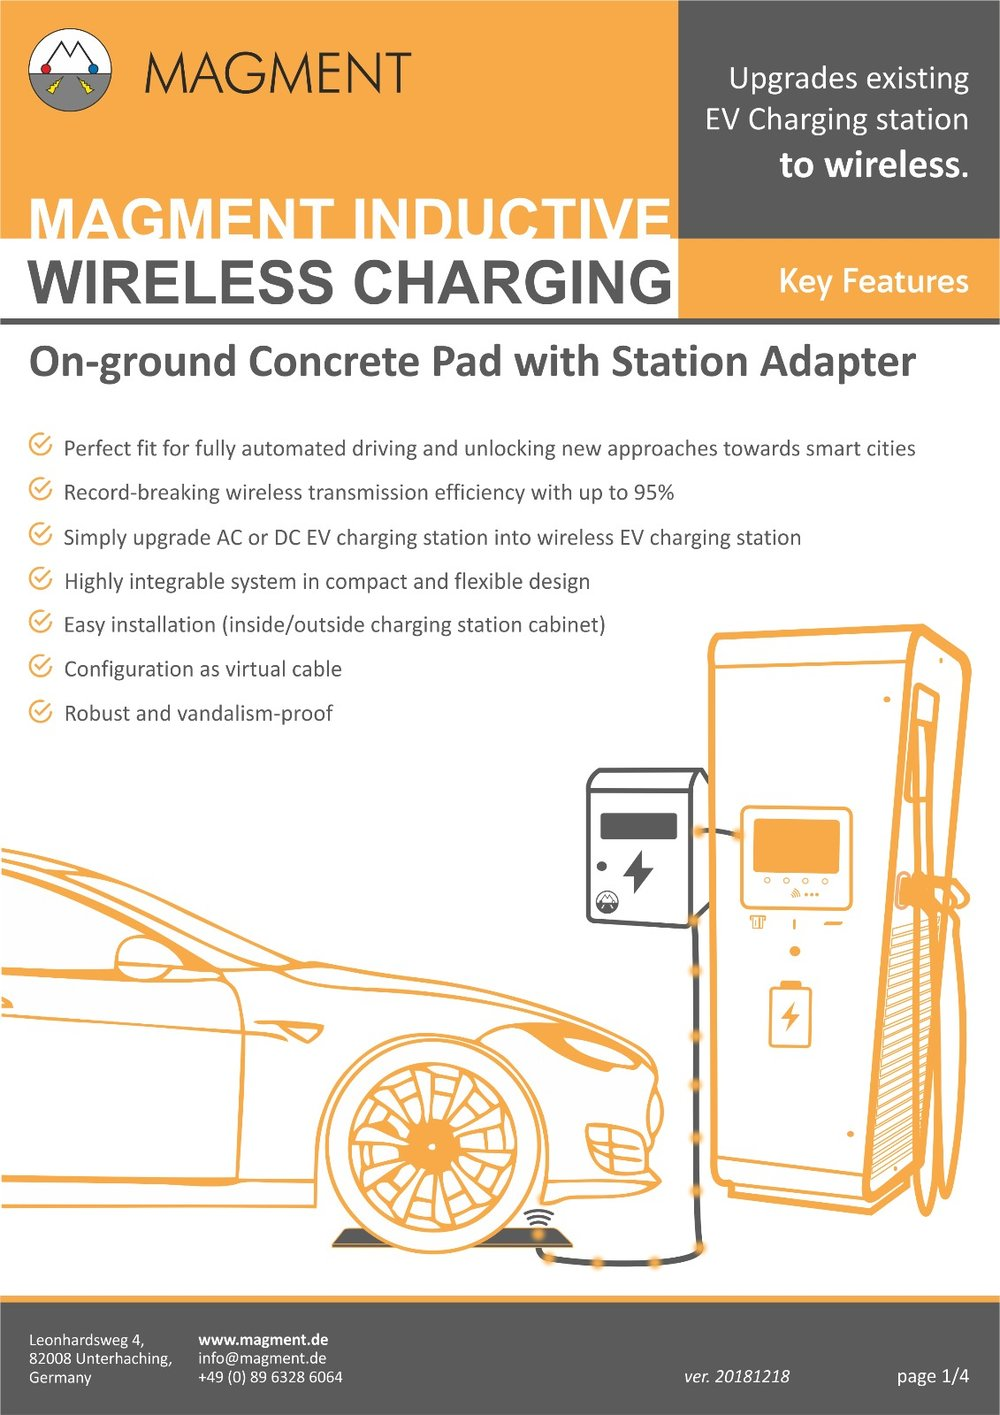 MAGMENT Wireless Charging Upgrade Kit.jpg